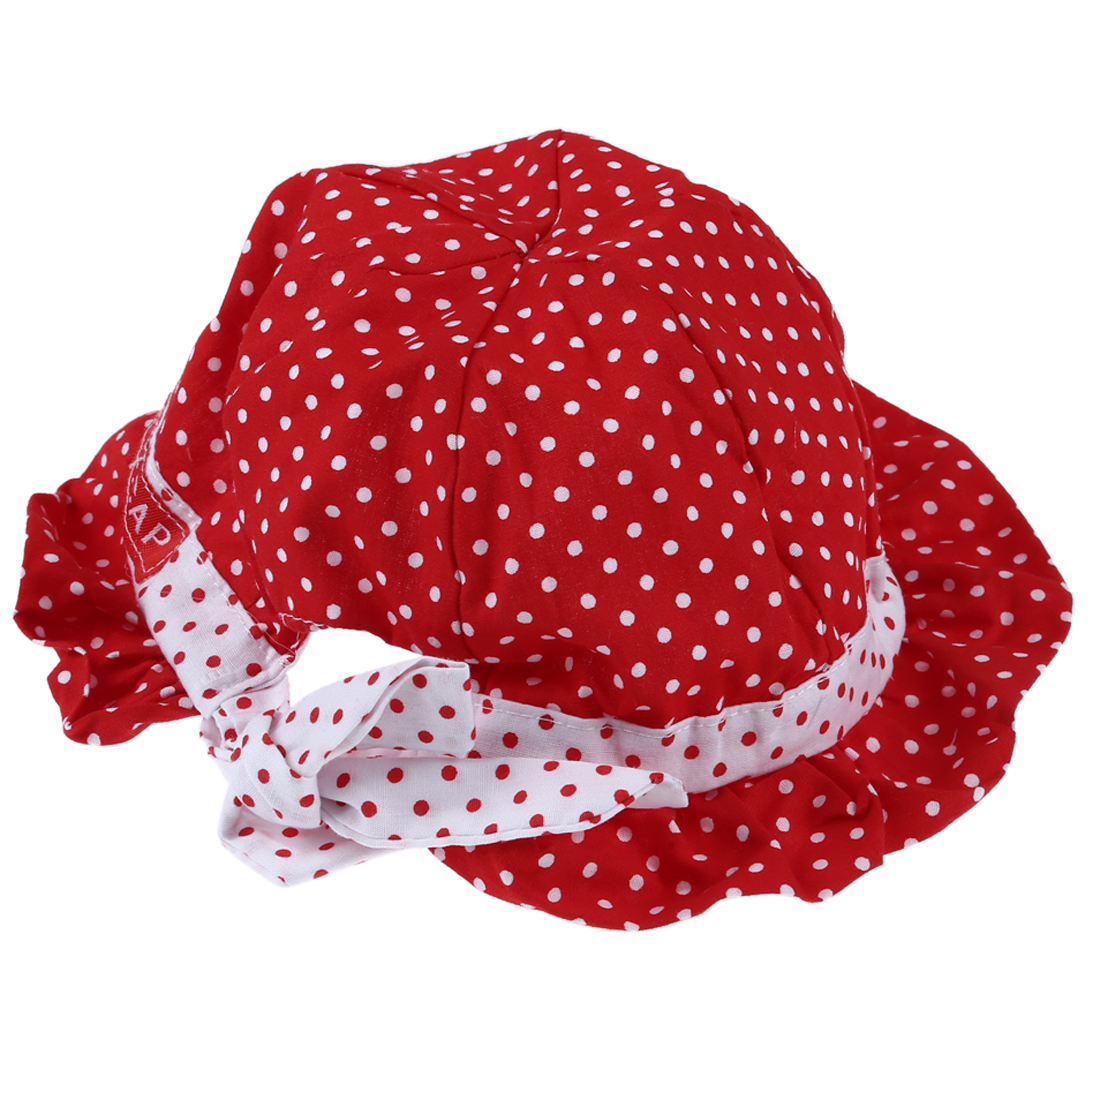 MACH New Sweet Cute Baby children Kids so Polka Summer Caps red